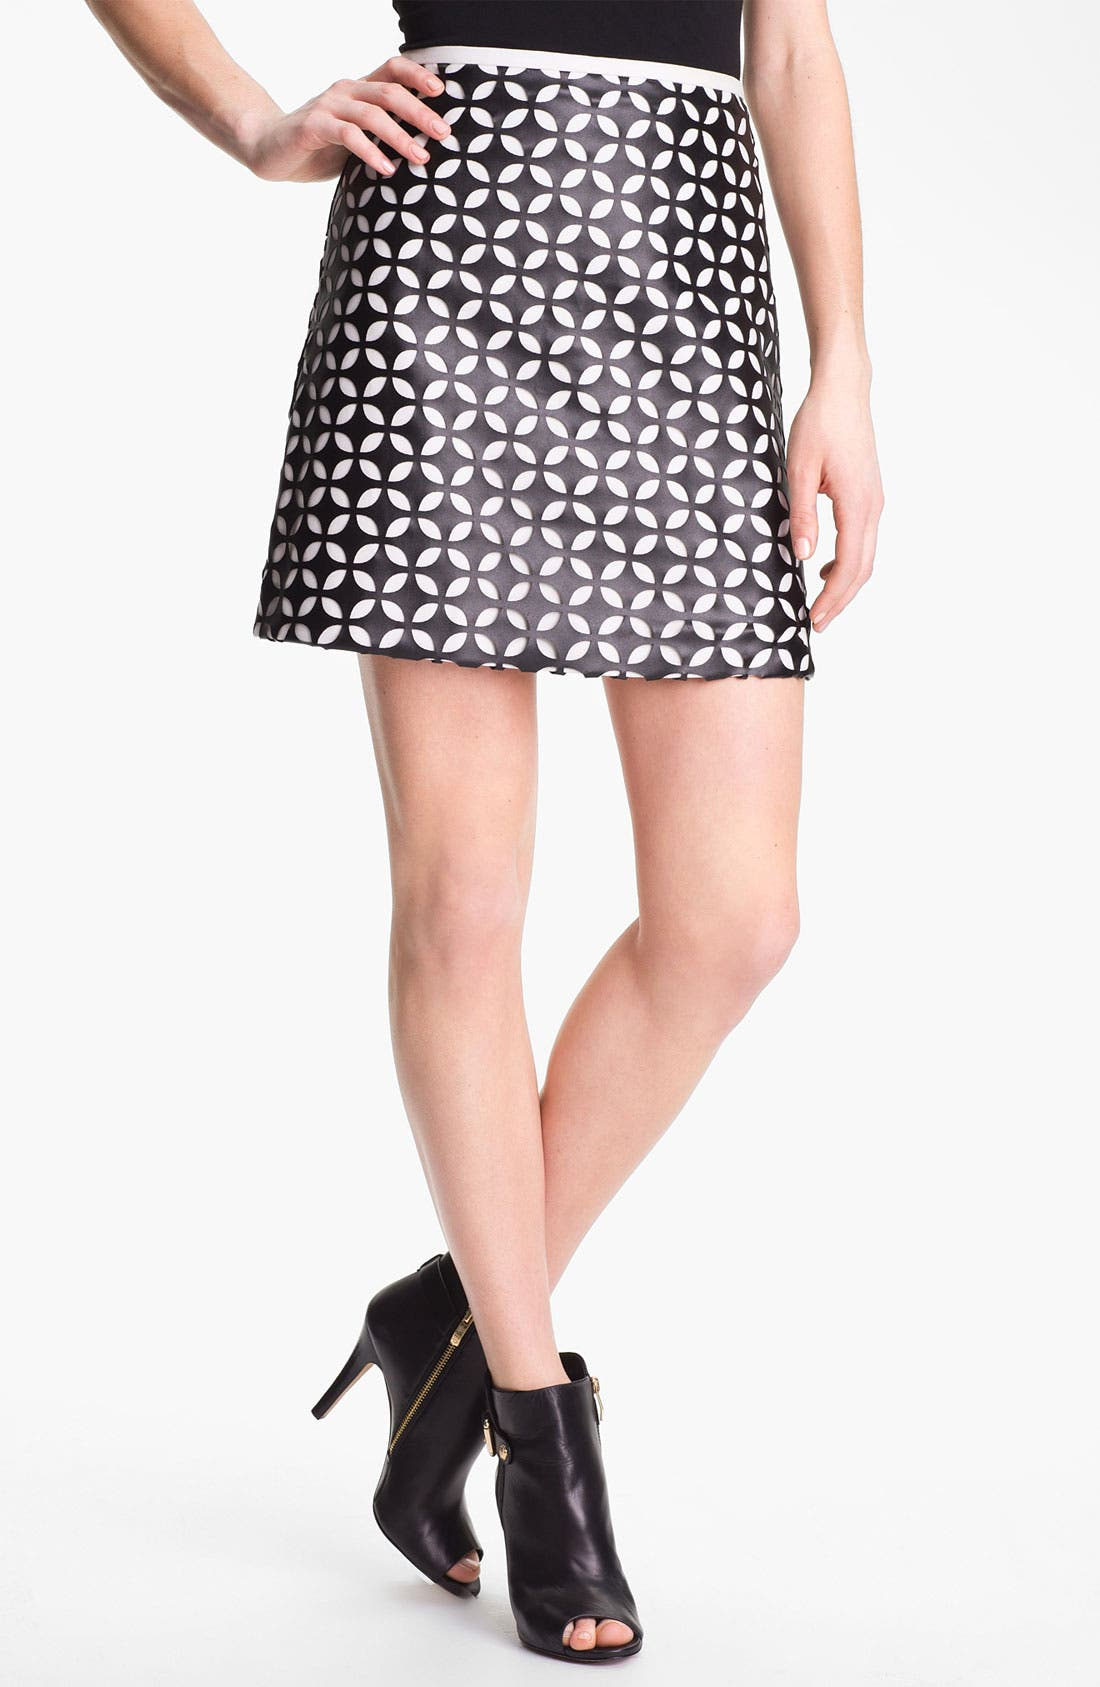 Alternate Image 1 Selected - Vince Camuto Mod Cutout Faux Leather Skirt